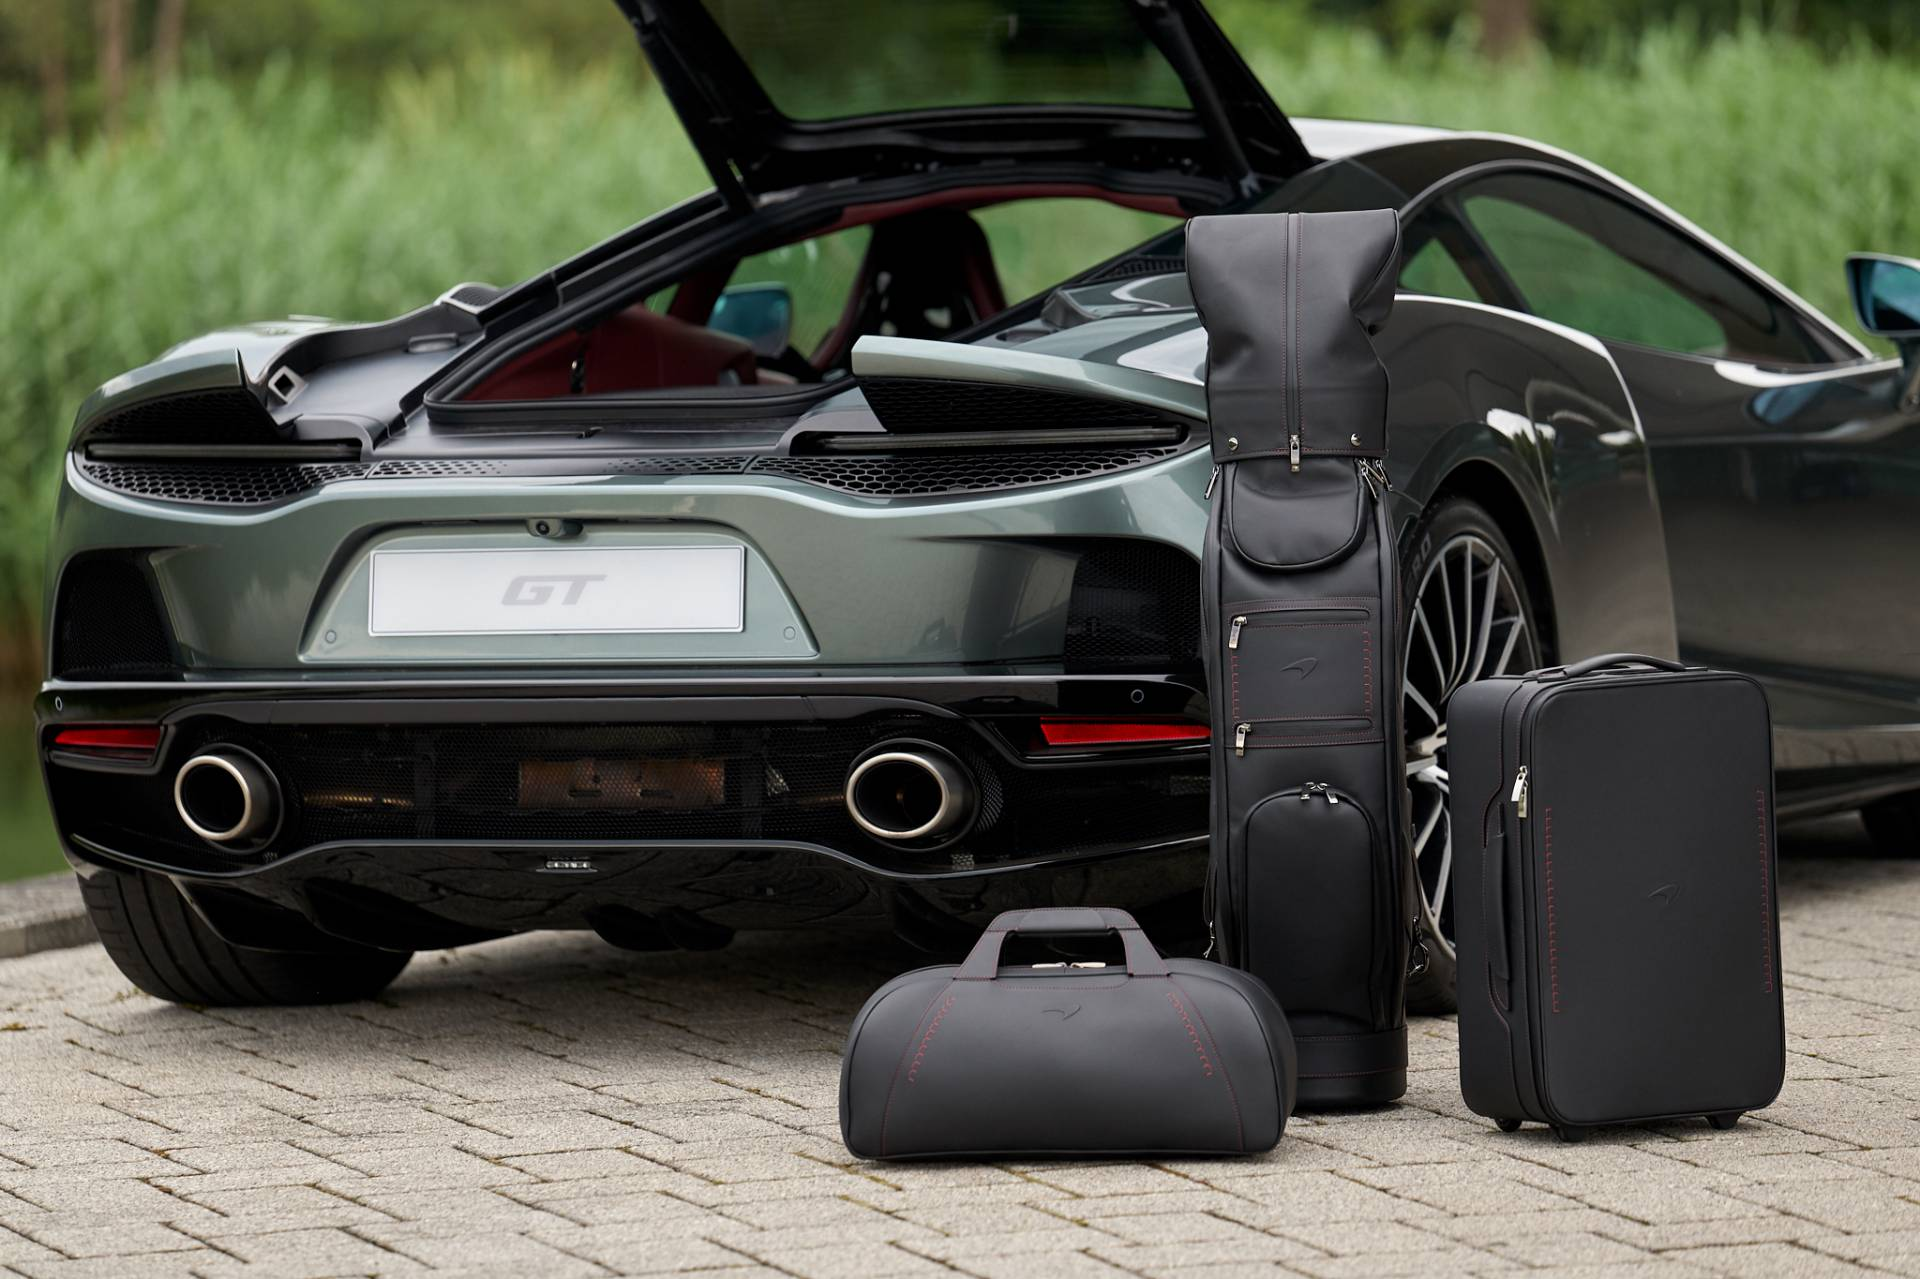 McLaren-GT-Luggage-Set-By-MSO-2